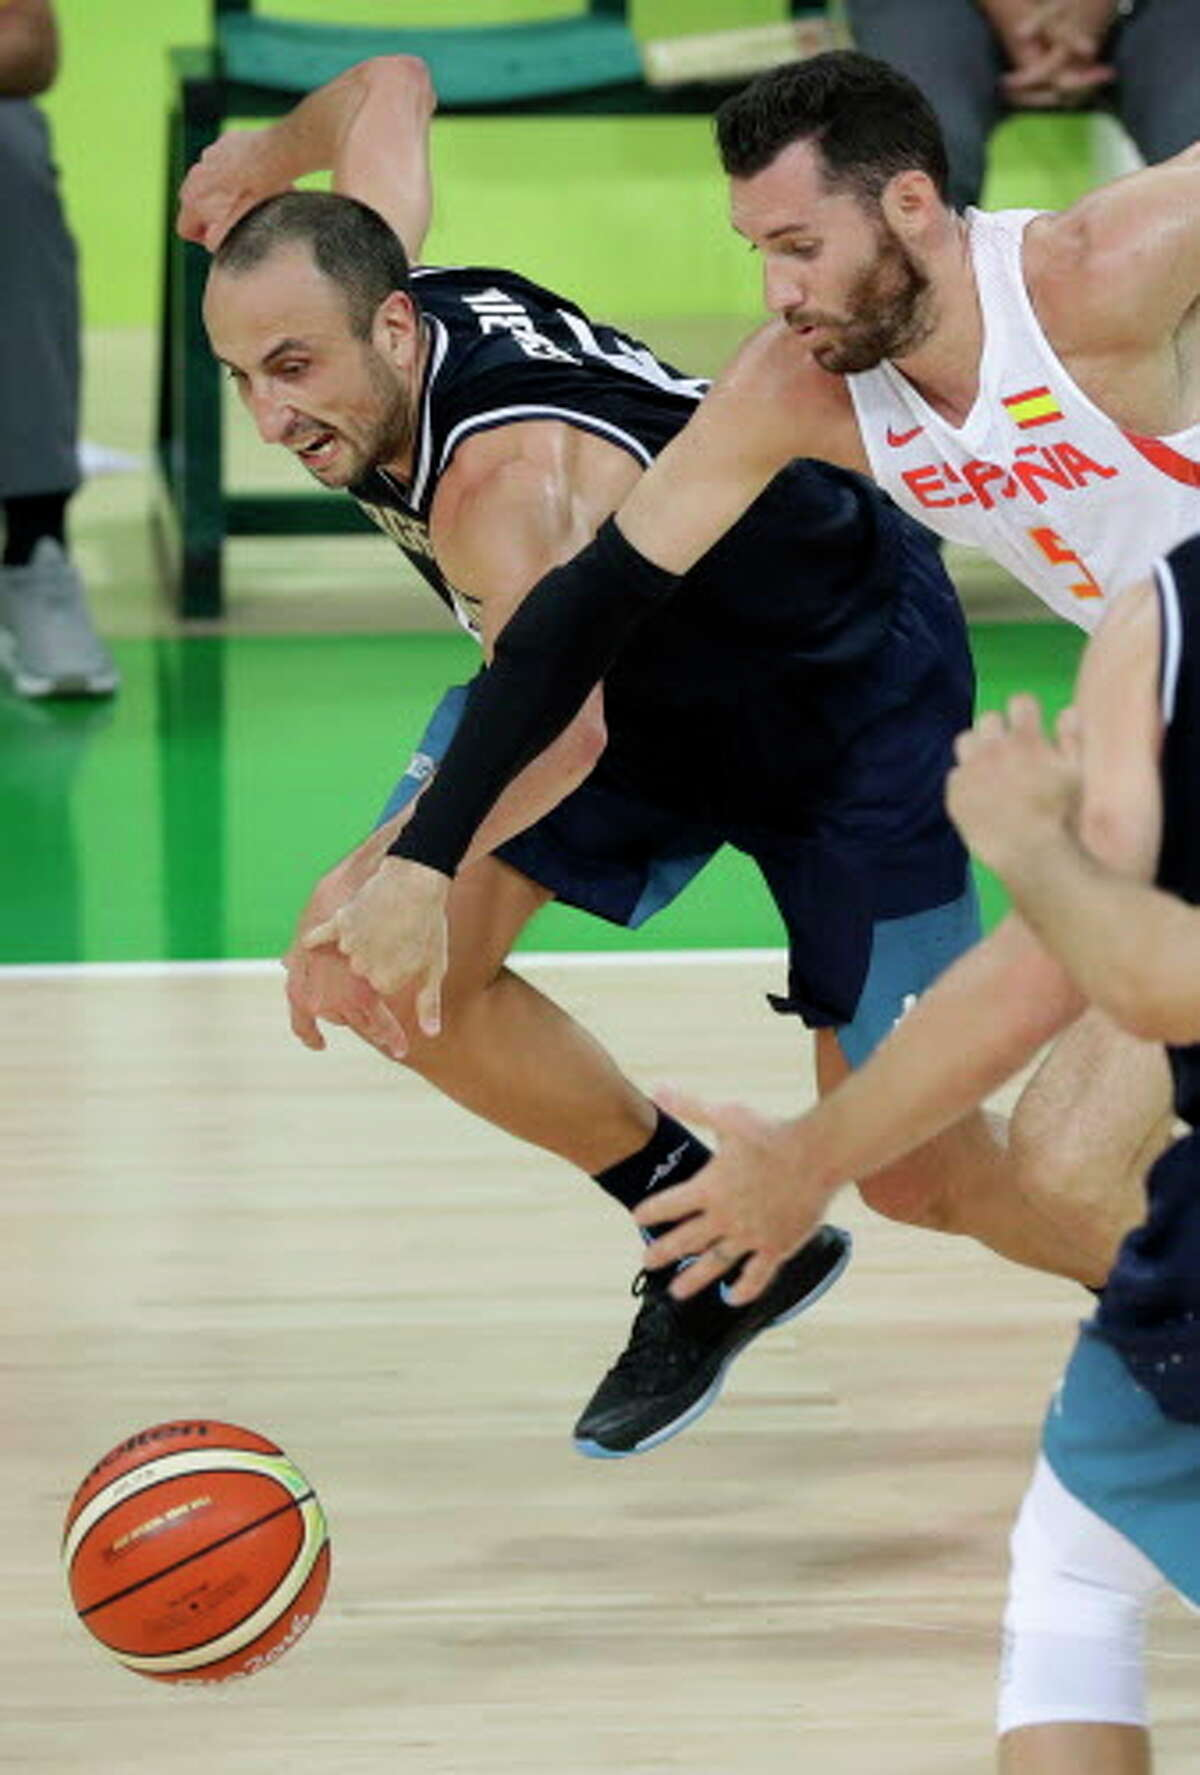 Argentina's Manu Ginobili, left, fights for a loose ball with Spain's Rudy Fernandez, right, during a basketball game at the 2016 Summer Olympics in Rio de Janeiro, Brazil, Monday, Aug. 15, 2016. (AP Photo/Charlie Neibergall)